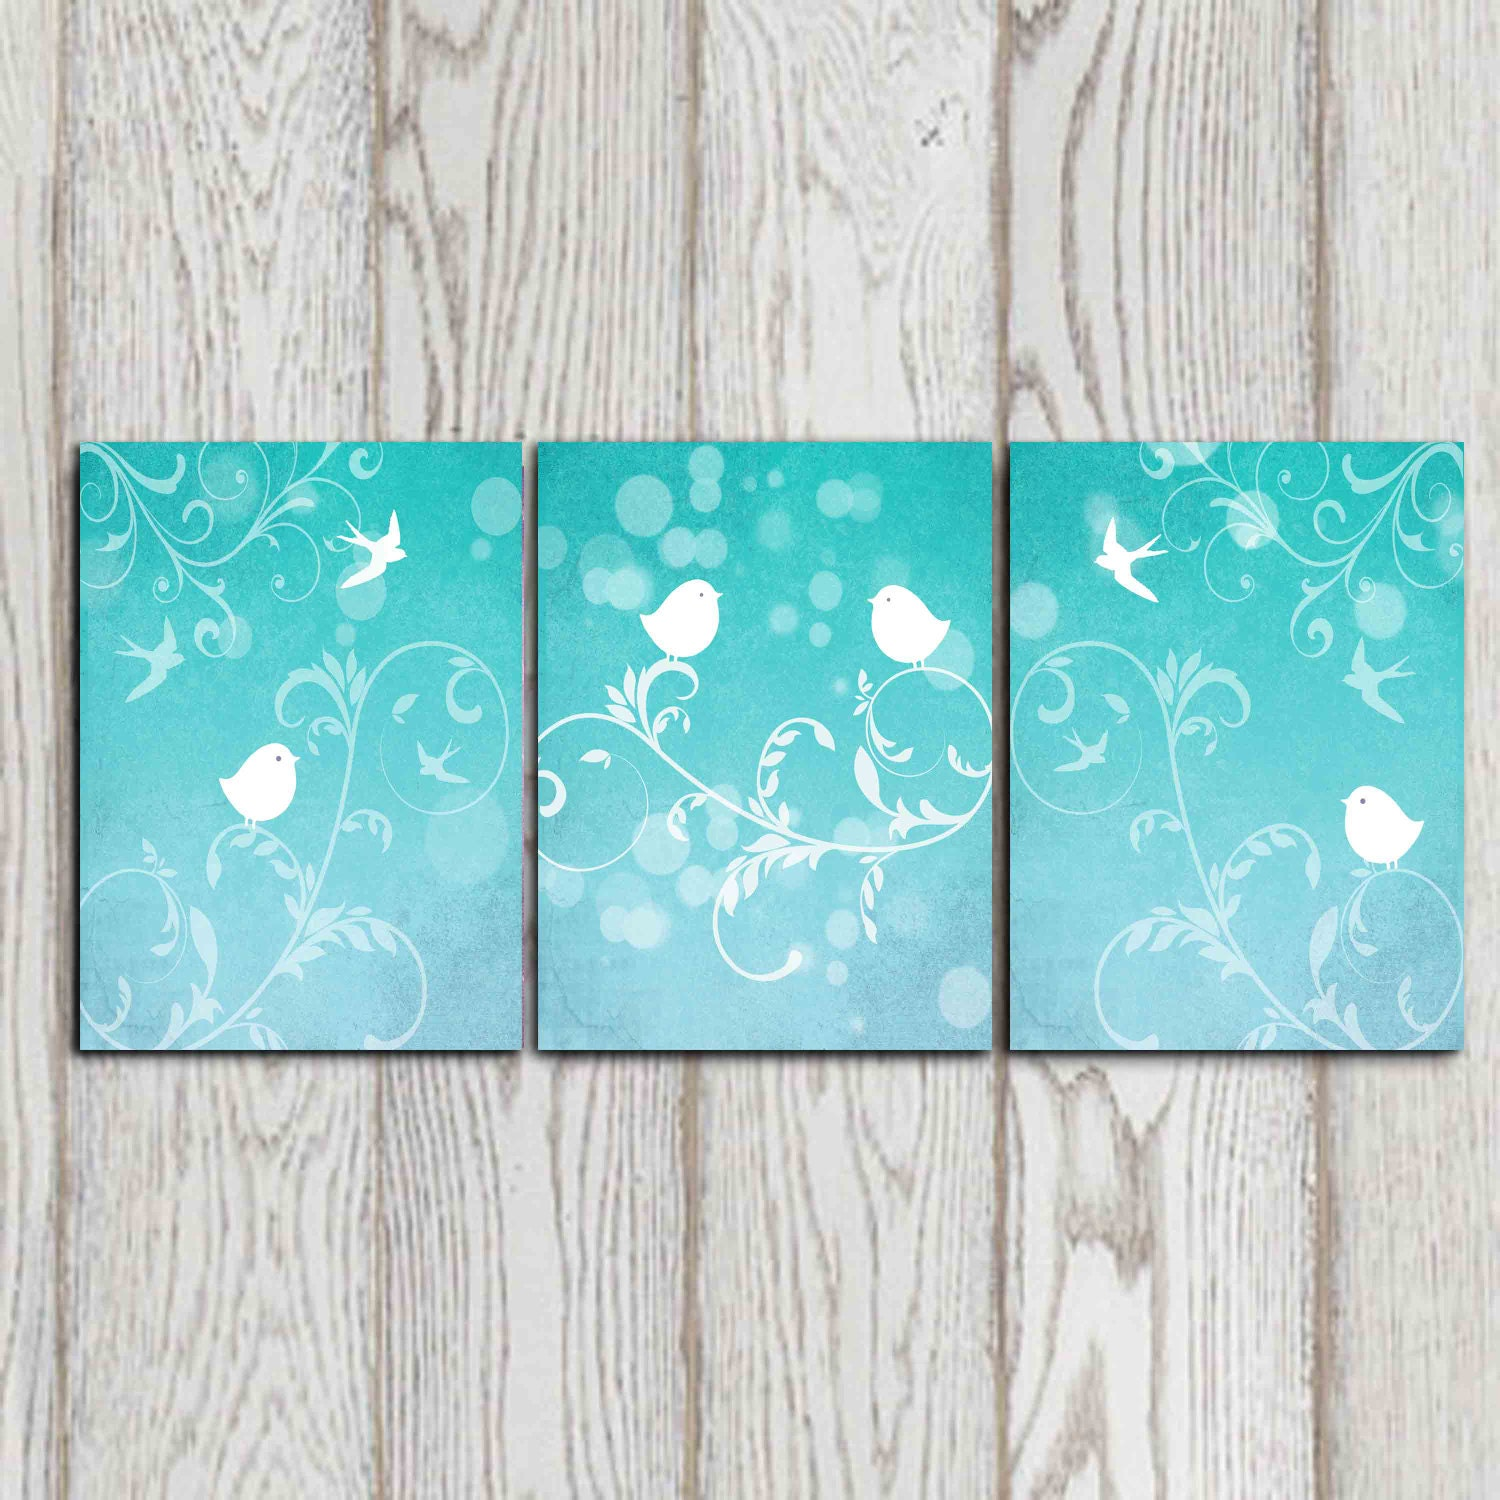 set of 3 bird art prints turquoise wall decor bedroom decor. Black Bedroom Furniture Sets. Home Design Ideas